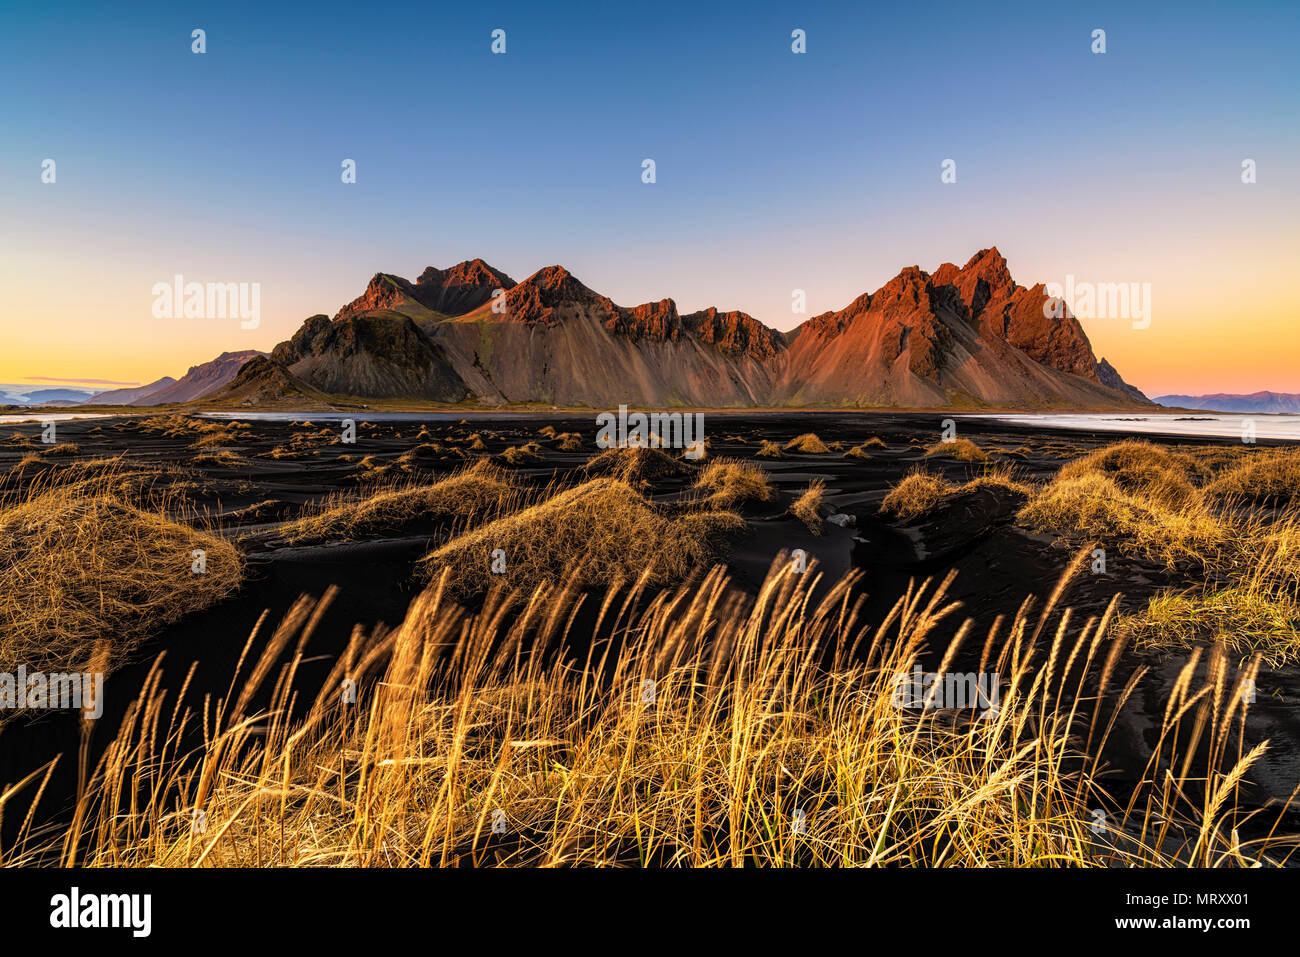 Stokksnes, Hofn, Eastern Iceland, Iceland. Vestrahorn mountain and the black sand dunes at sunset. - Stock Image